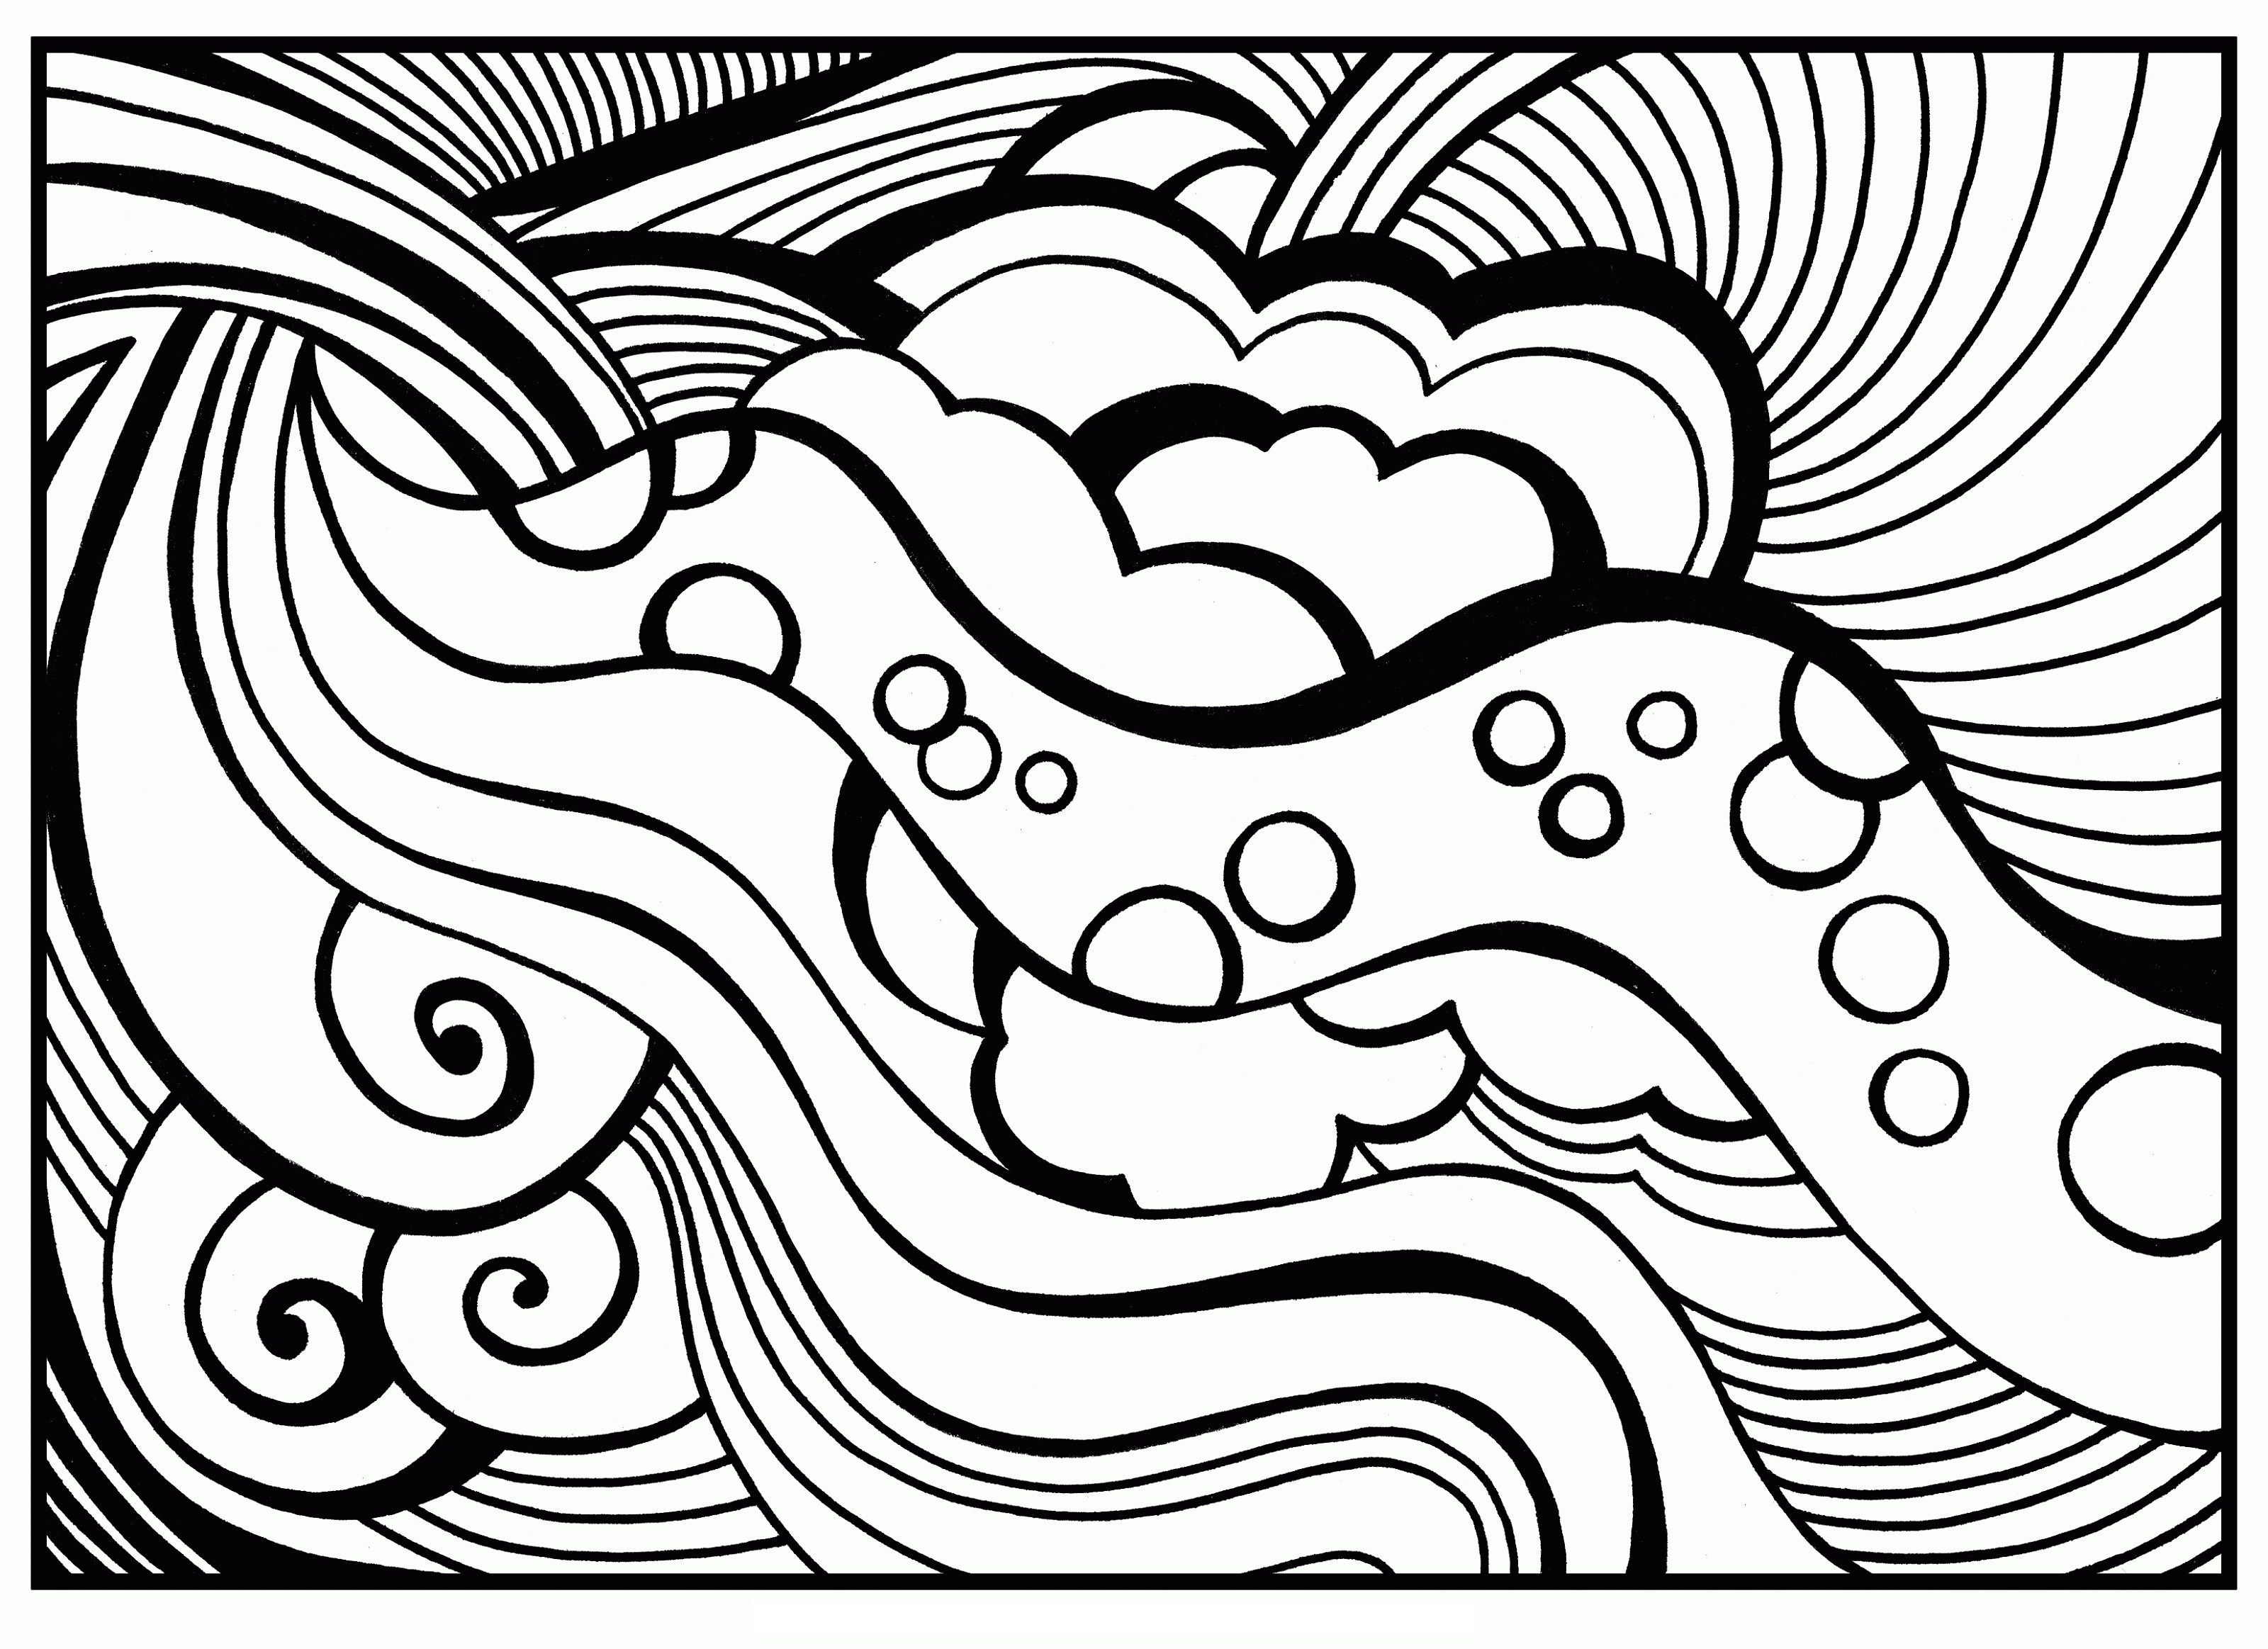 Coloring Sheets For Teens AbstractColoring Sheets For Teens Abstract